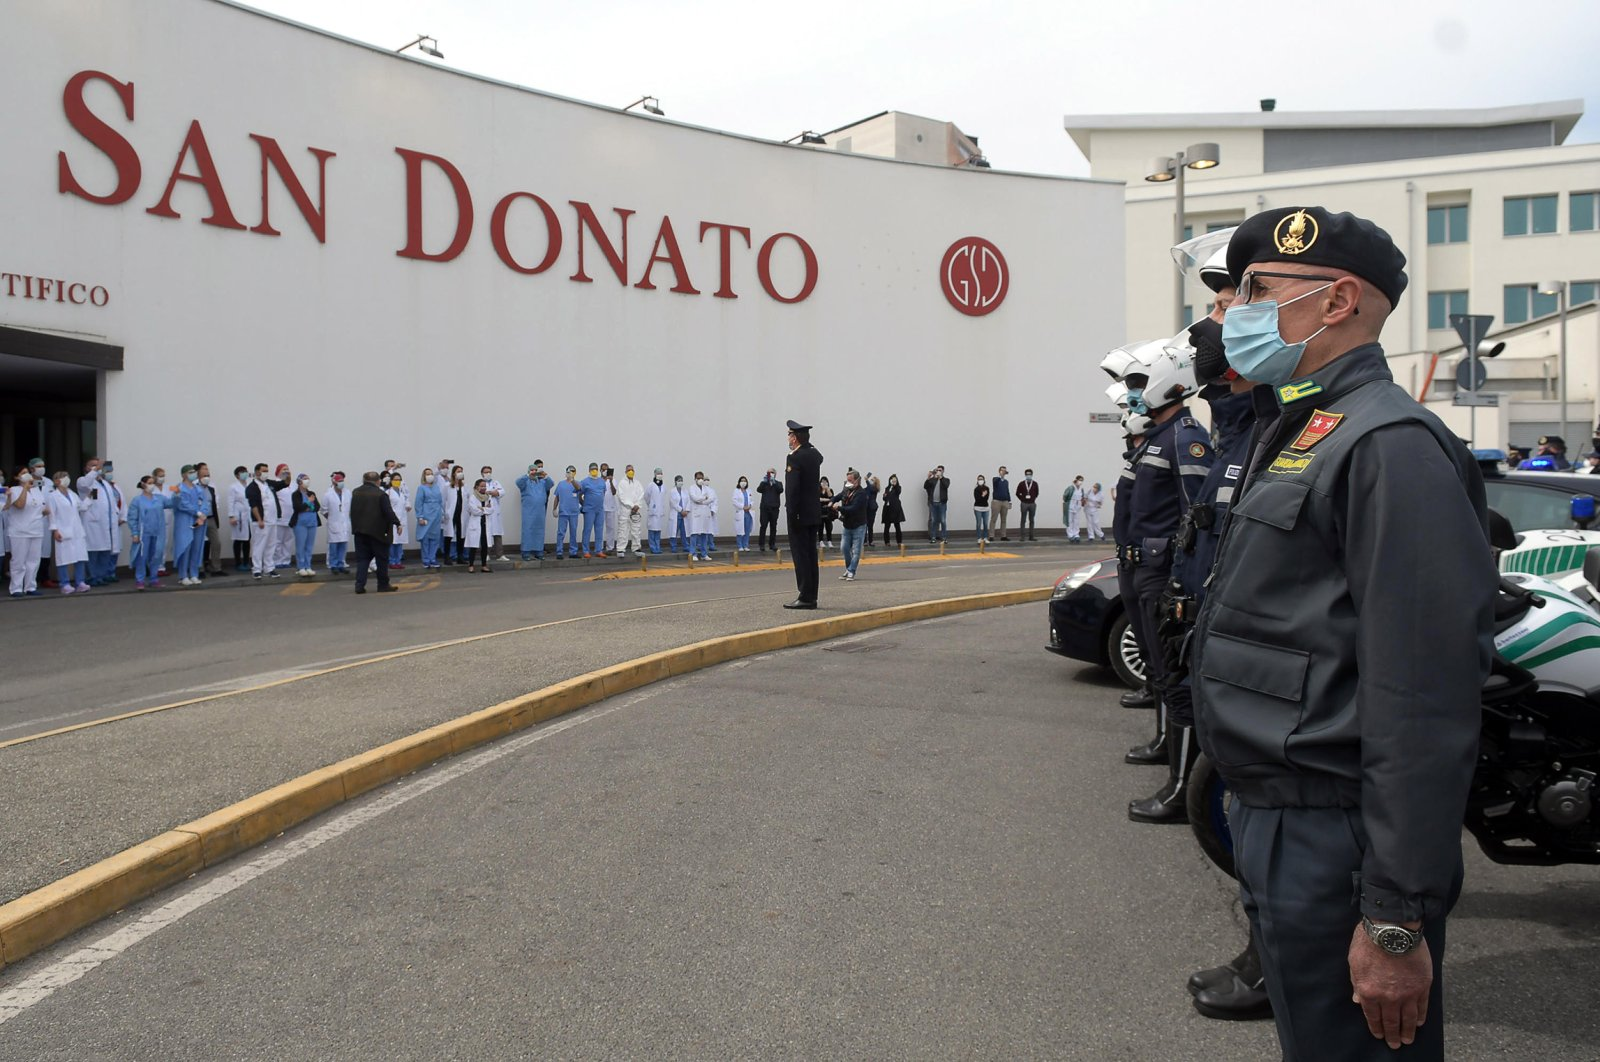 Italian law enforcement officers wearing protective face masks praise medical staff amid the ongoing coronavirus COVID-19 pandemic in front of the Polyclinic of San Donato Milanese, on the outskirts of Milan, northern Italy, April 17, 2020. (EPA Photo)